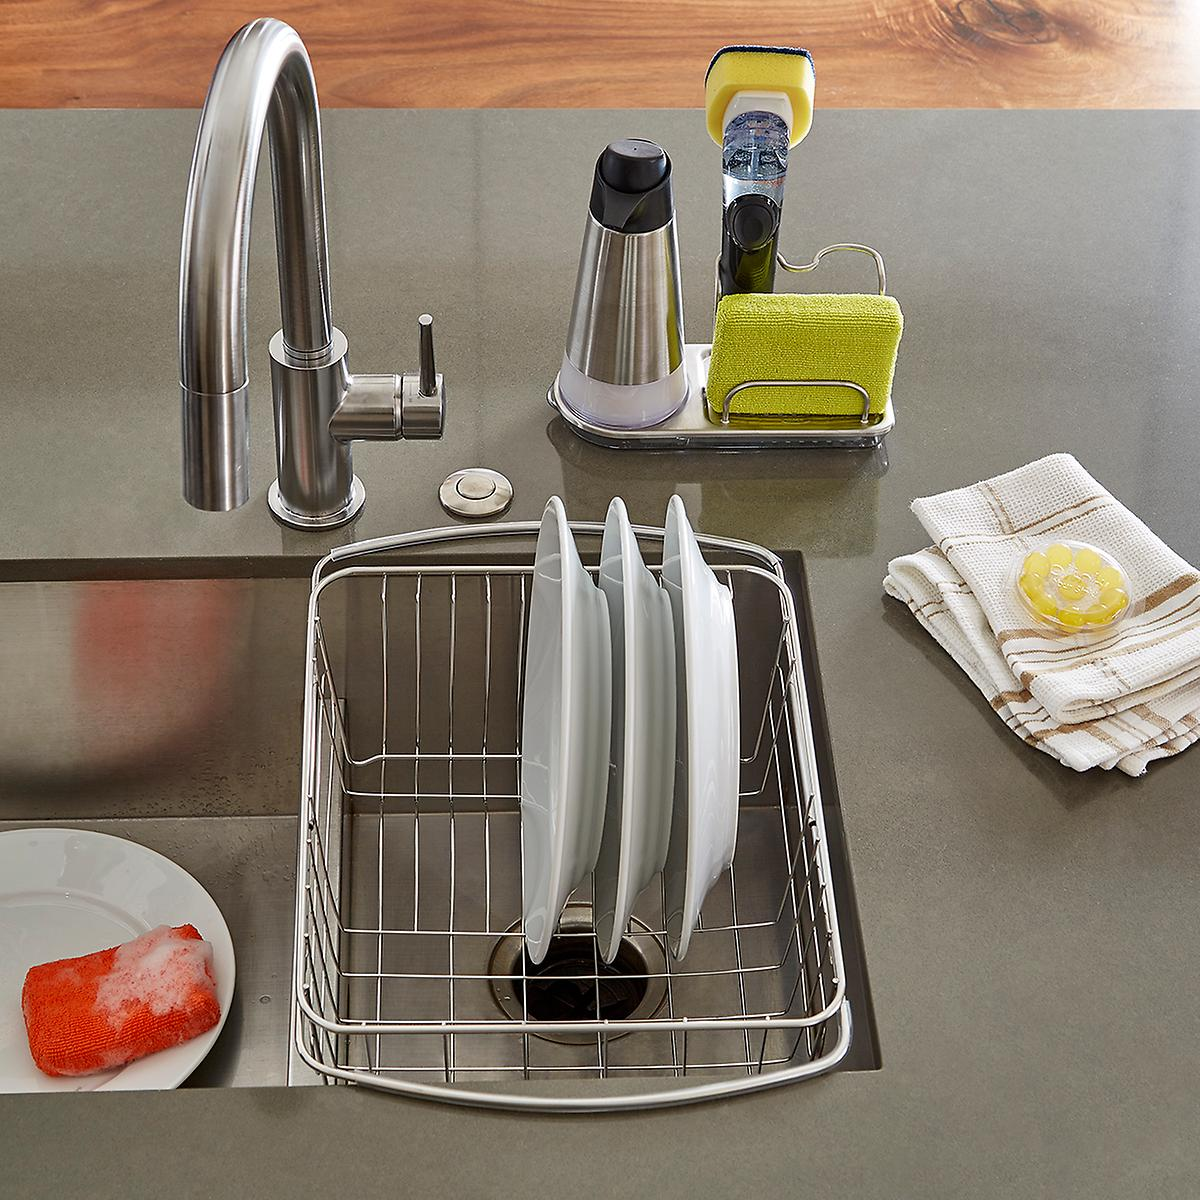 oxo stainless steel sink organizer the container store. Black Bedroom Furniture Sets. Home Design Ideas